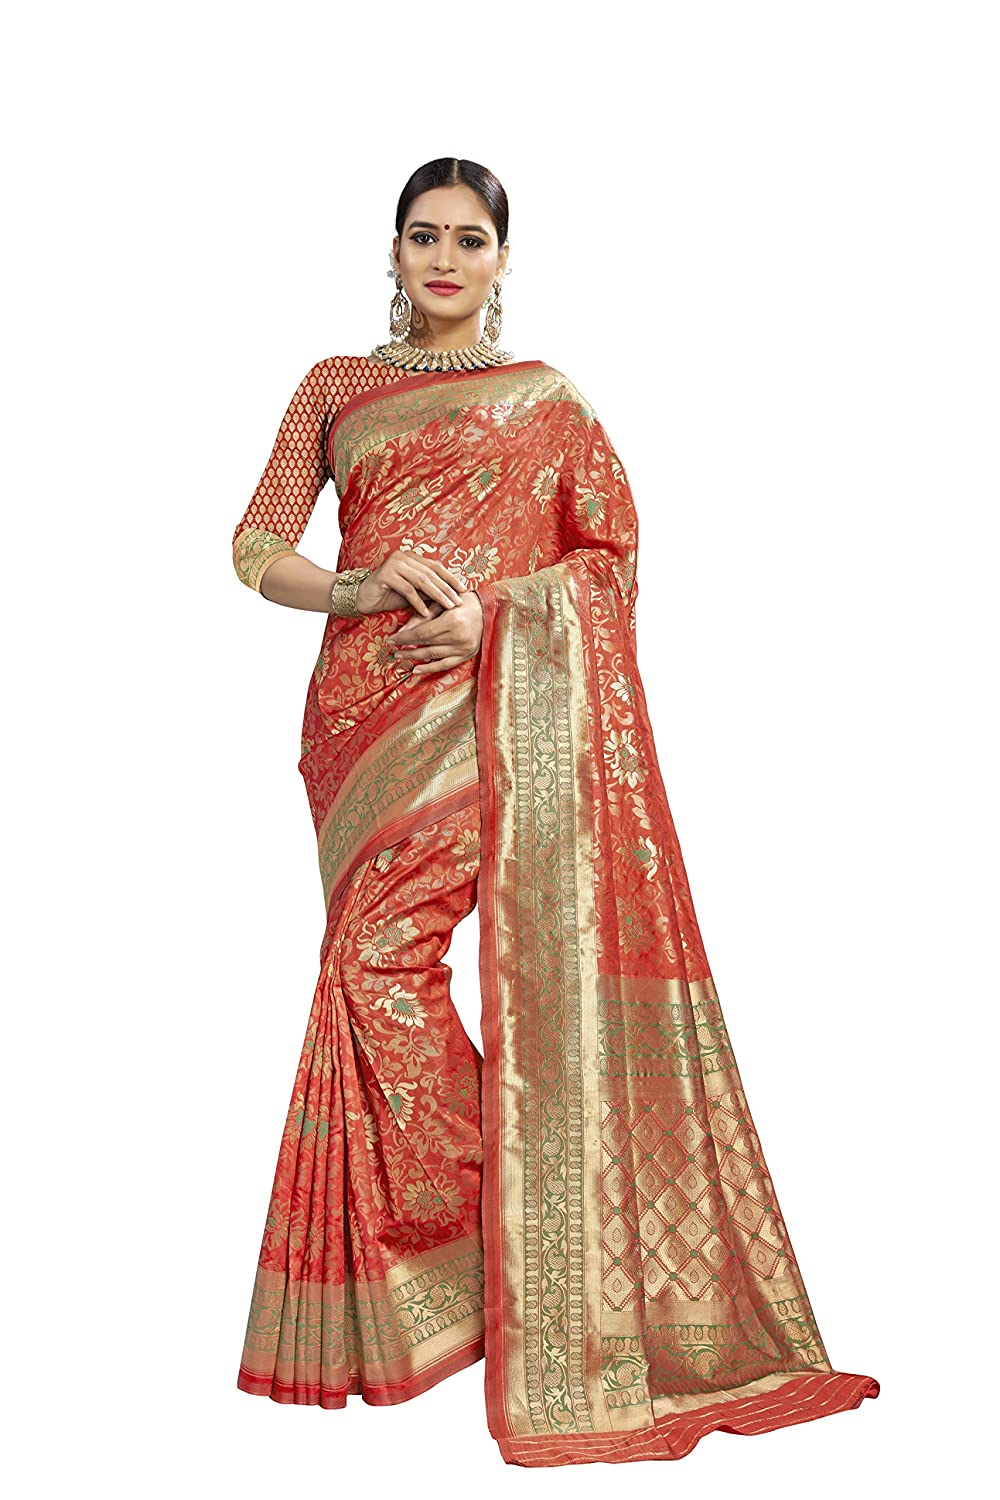 Banarasi Silk Saree With Unstitched Blouse For Festive Wear